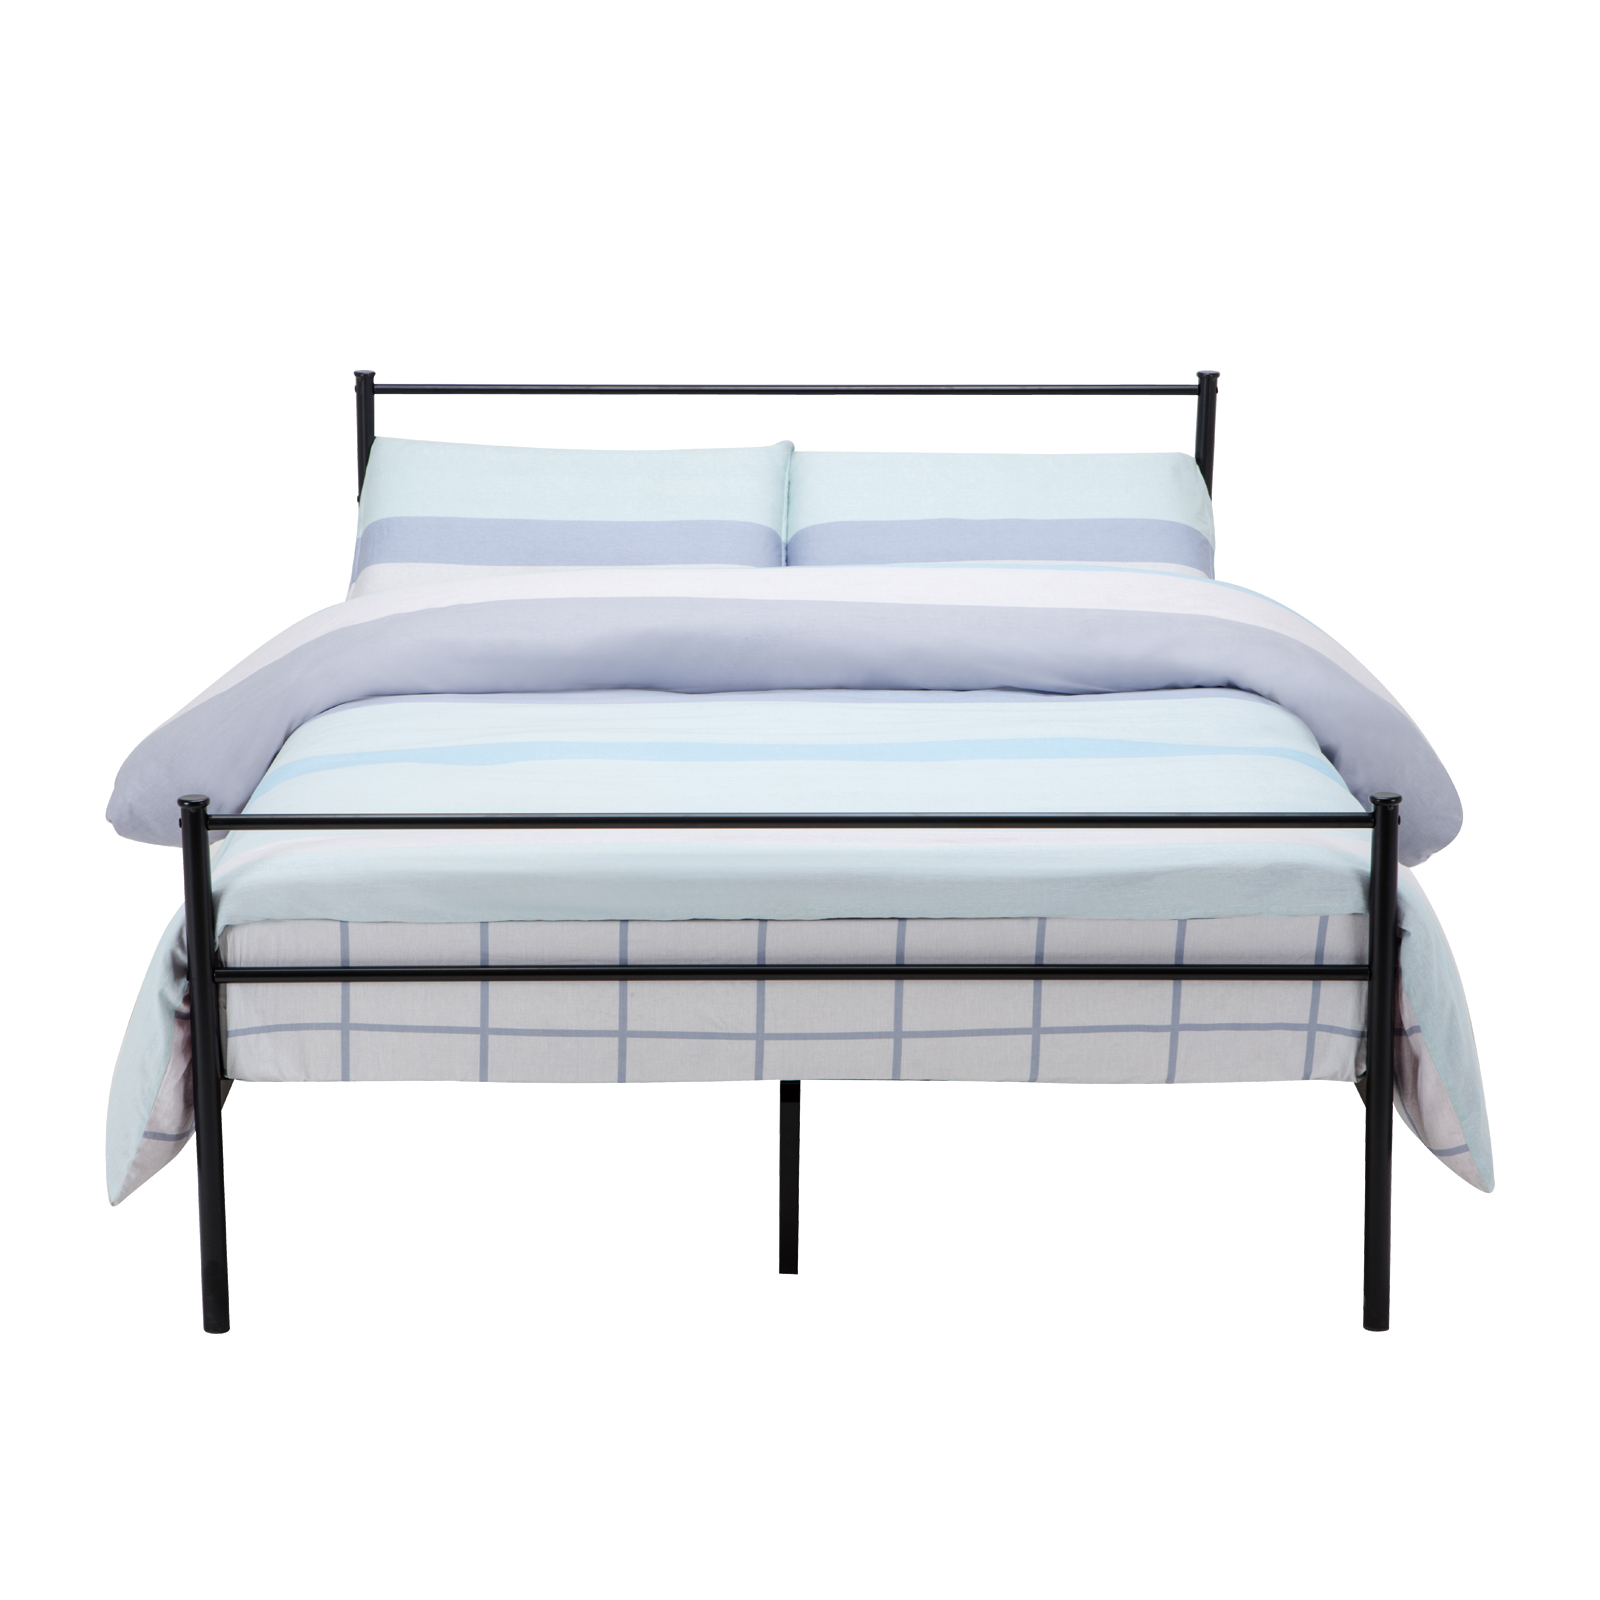 Twin full queen size metal bed frame platform headboards 6 for Full size bed frame